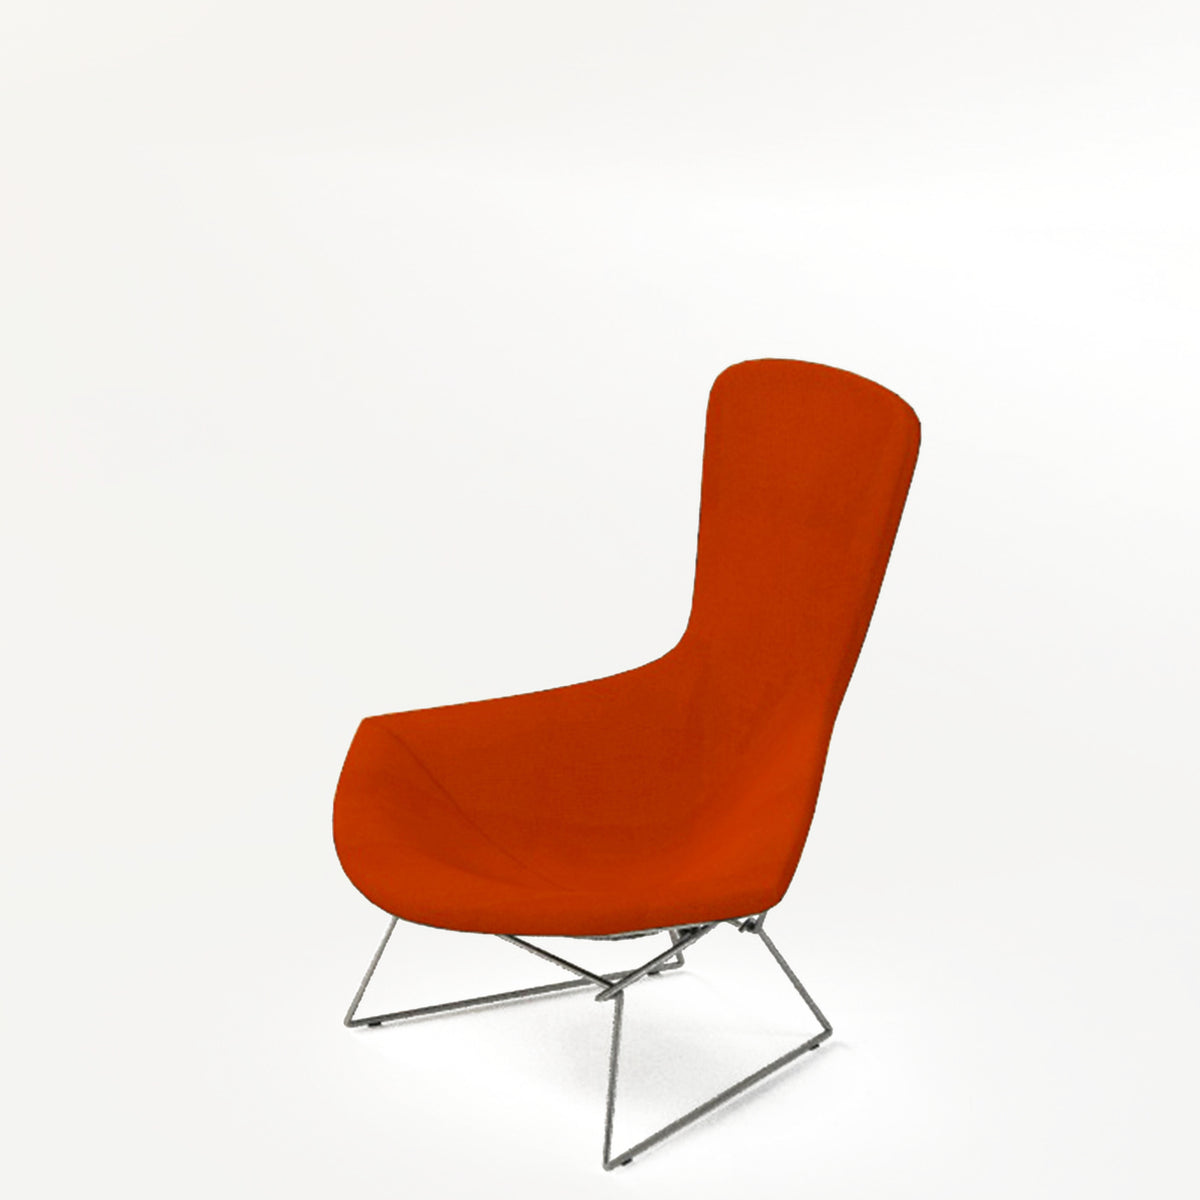 Knoll Bertoia Bird Lounge Chair Orange 0608